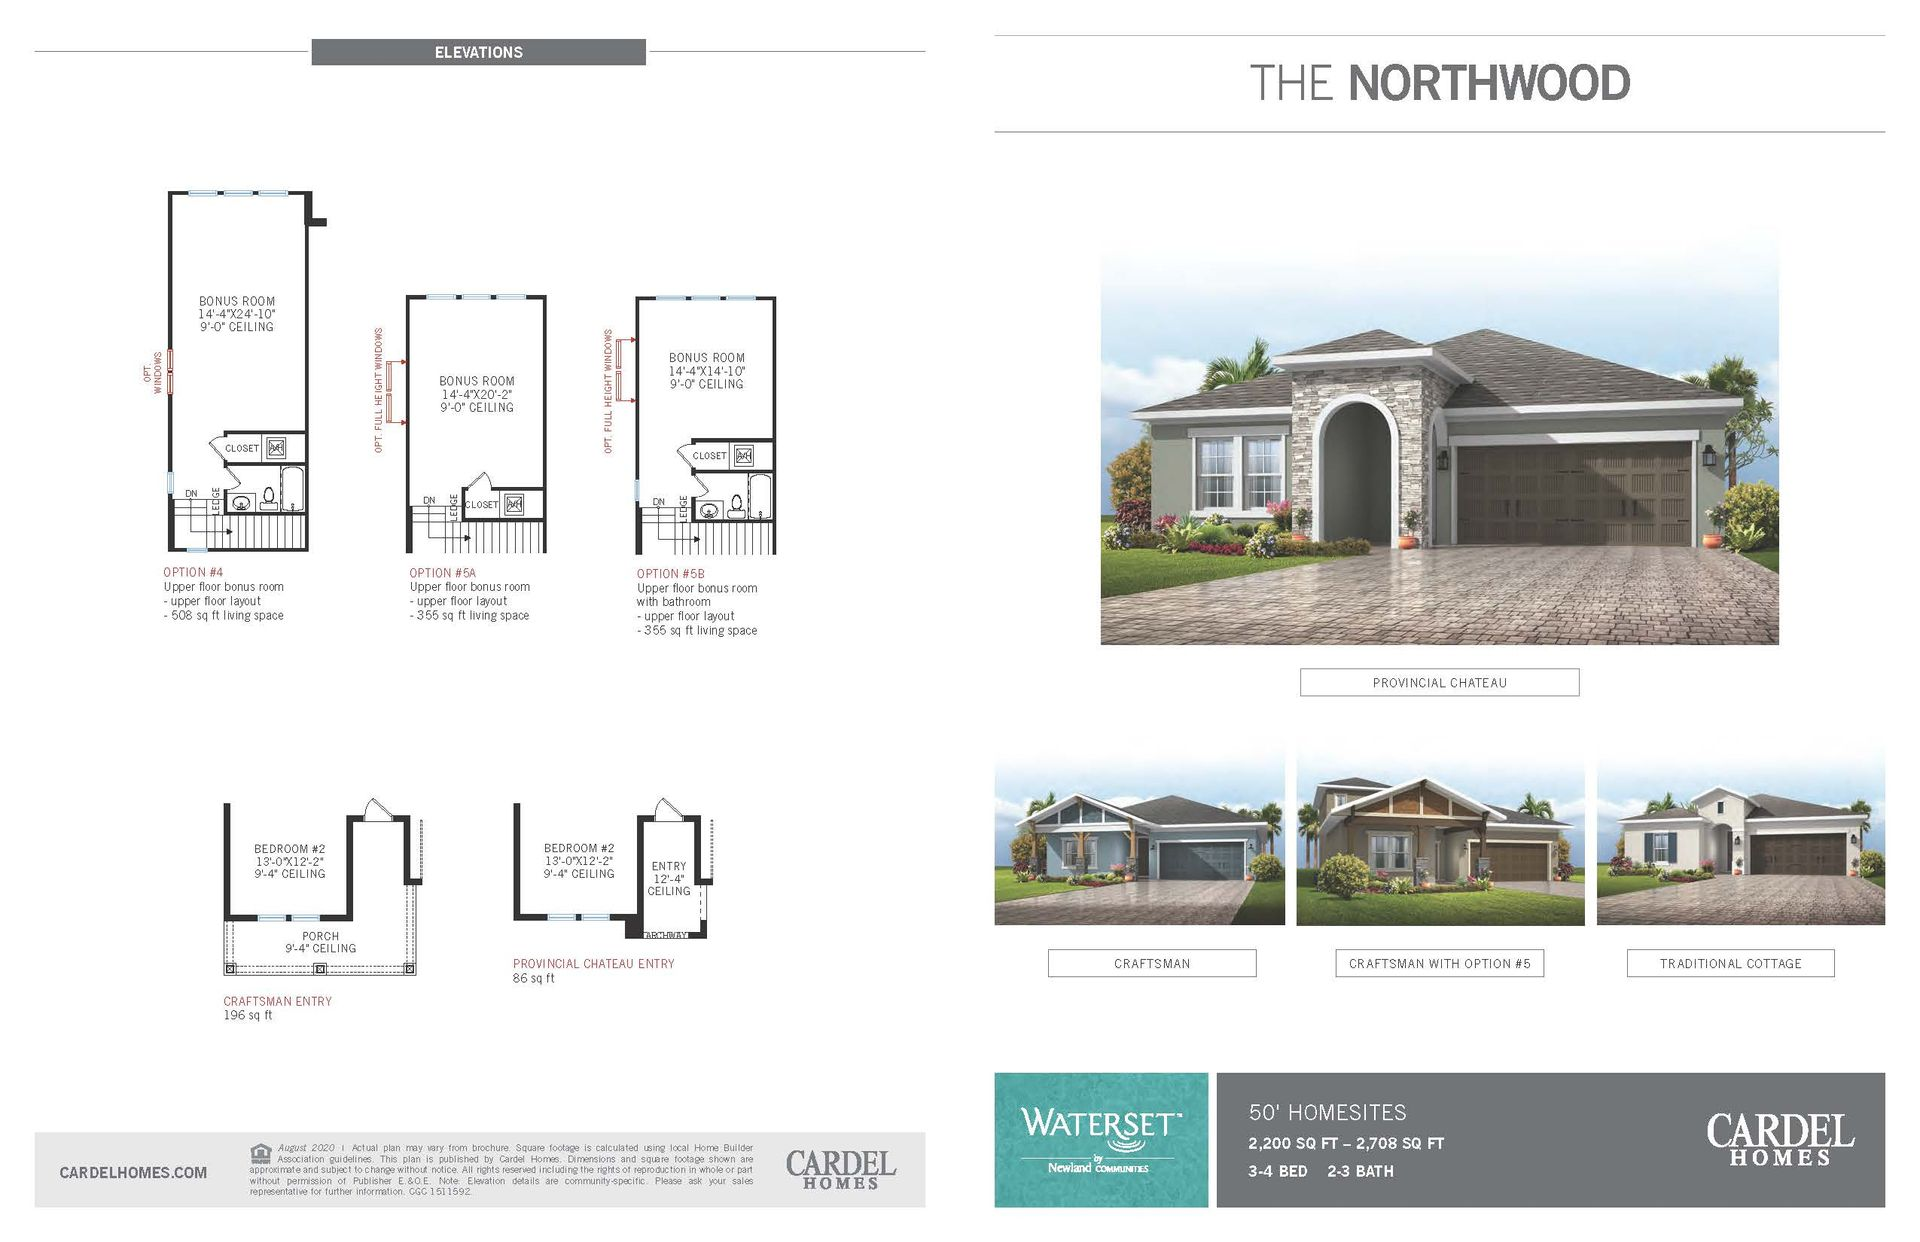 (Contact agent for address) The Northwood 2